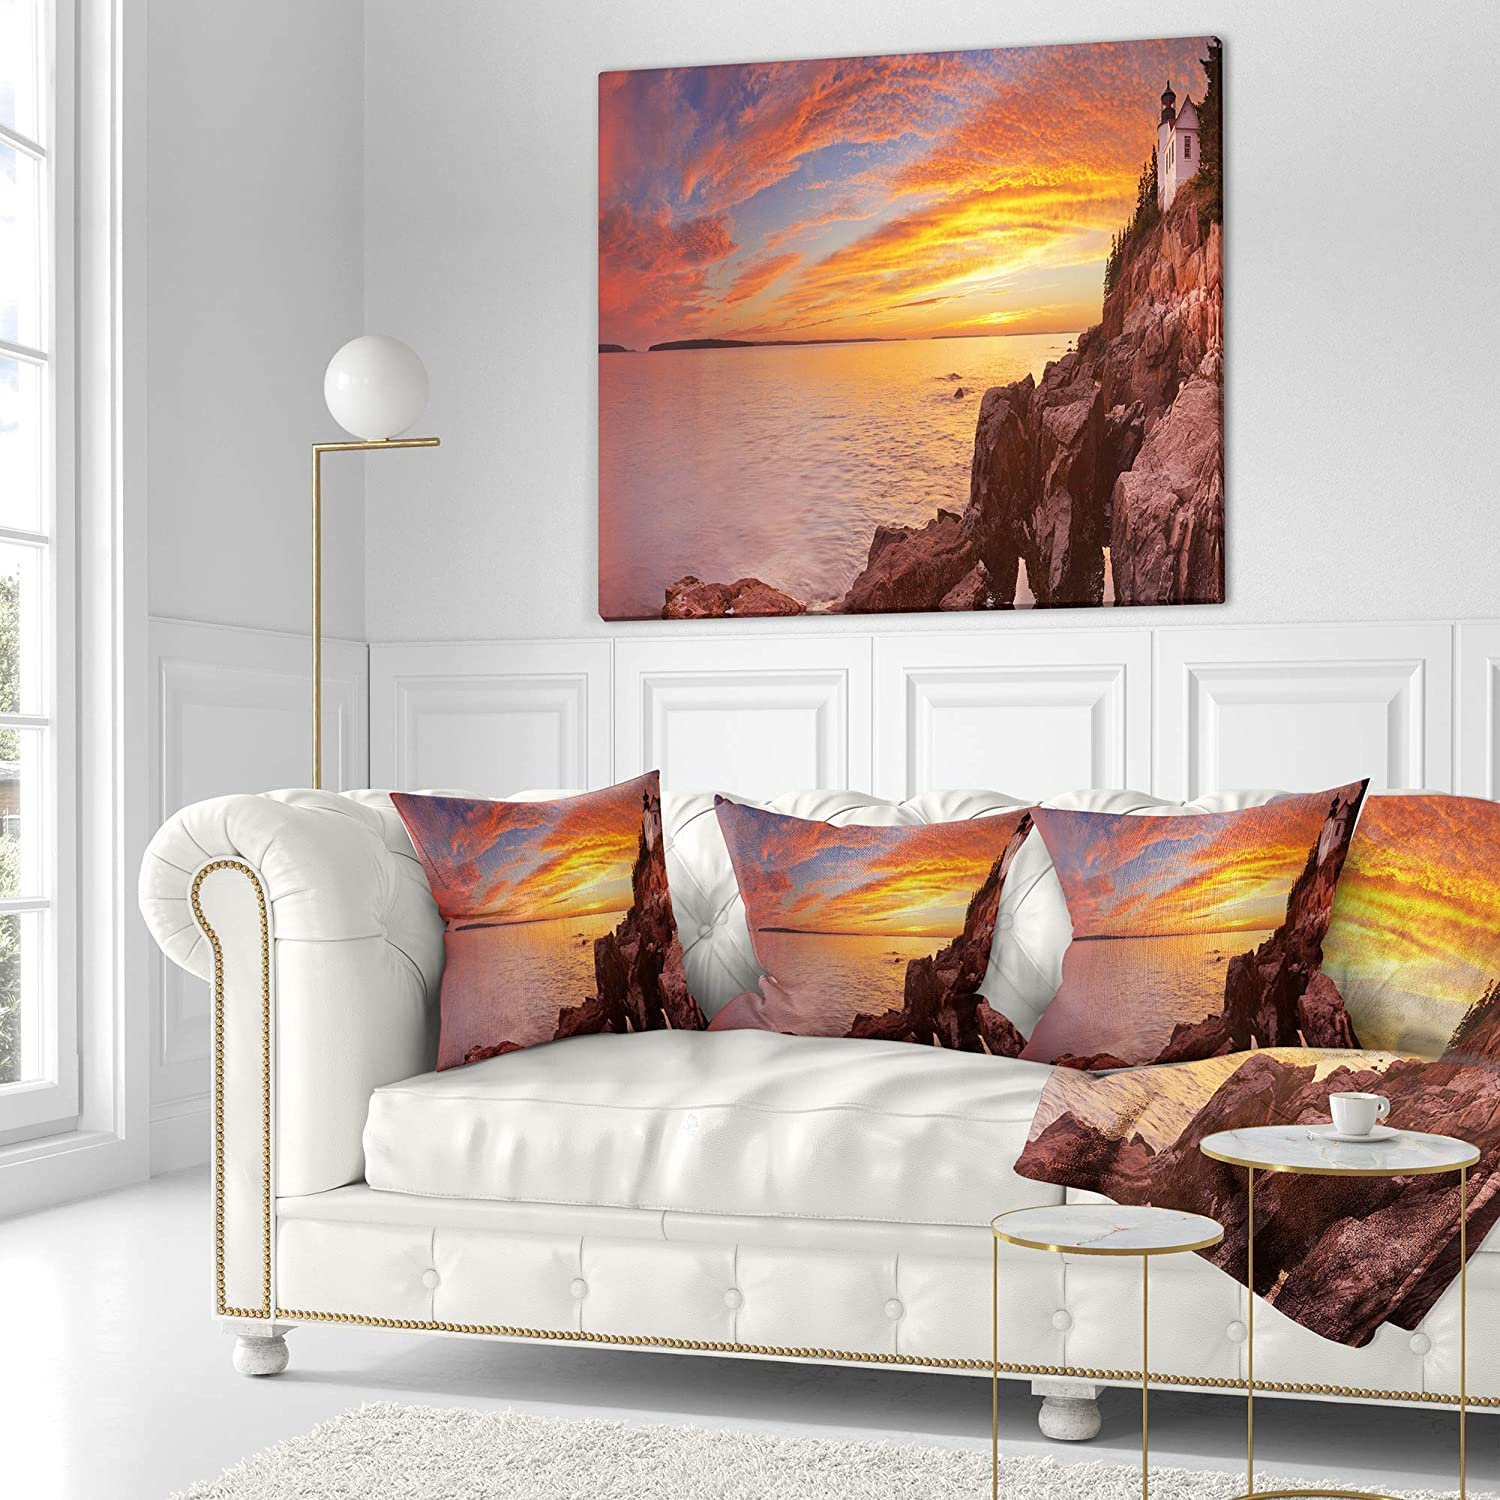 x 26 in Insert Printed On Both Side Sofa Throw Pillow 26 in in Designart CU11557-26-26 Bass Harbor Head Lighthouse Panorama Modern Seascape Cushion Cover for Living Room